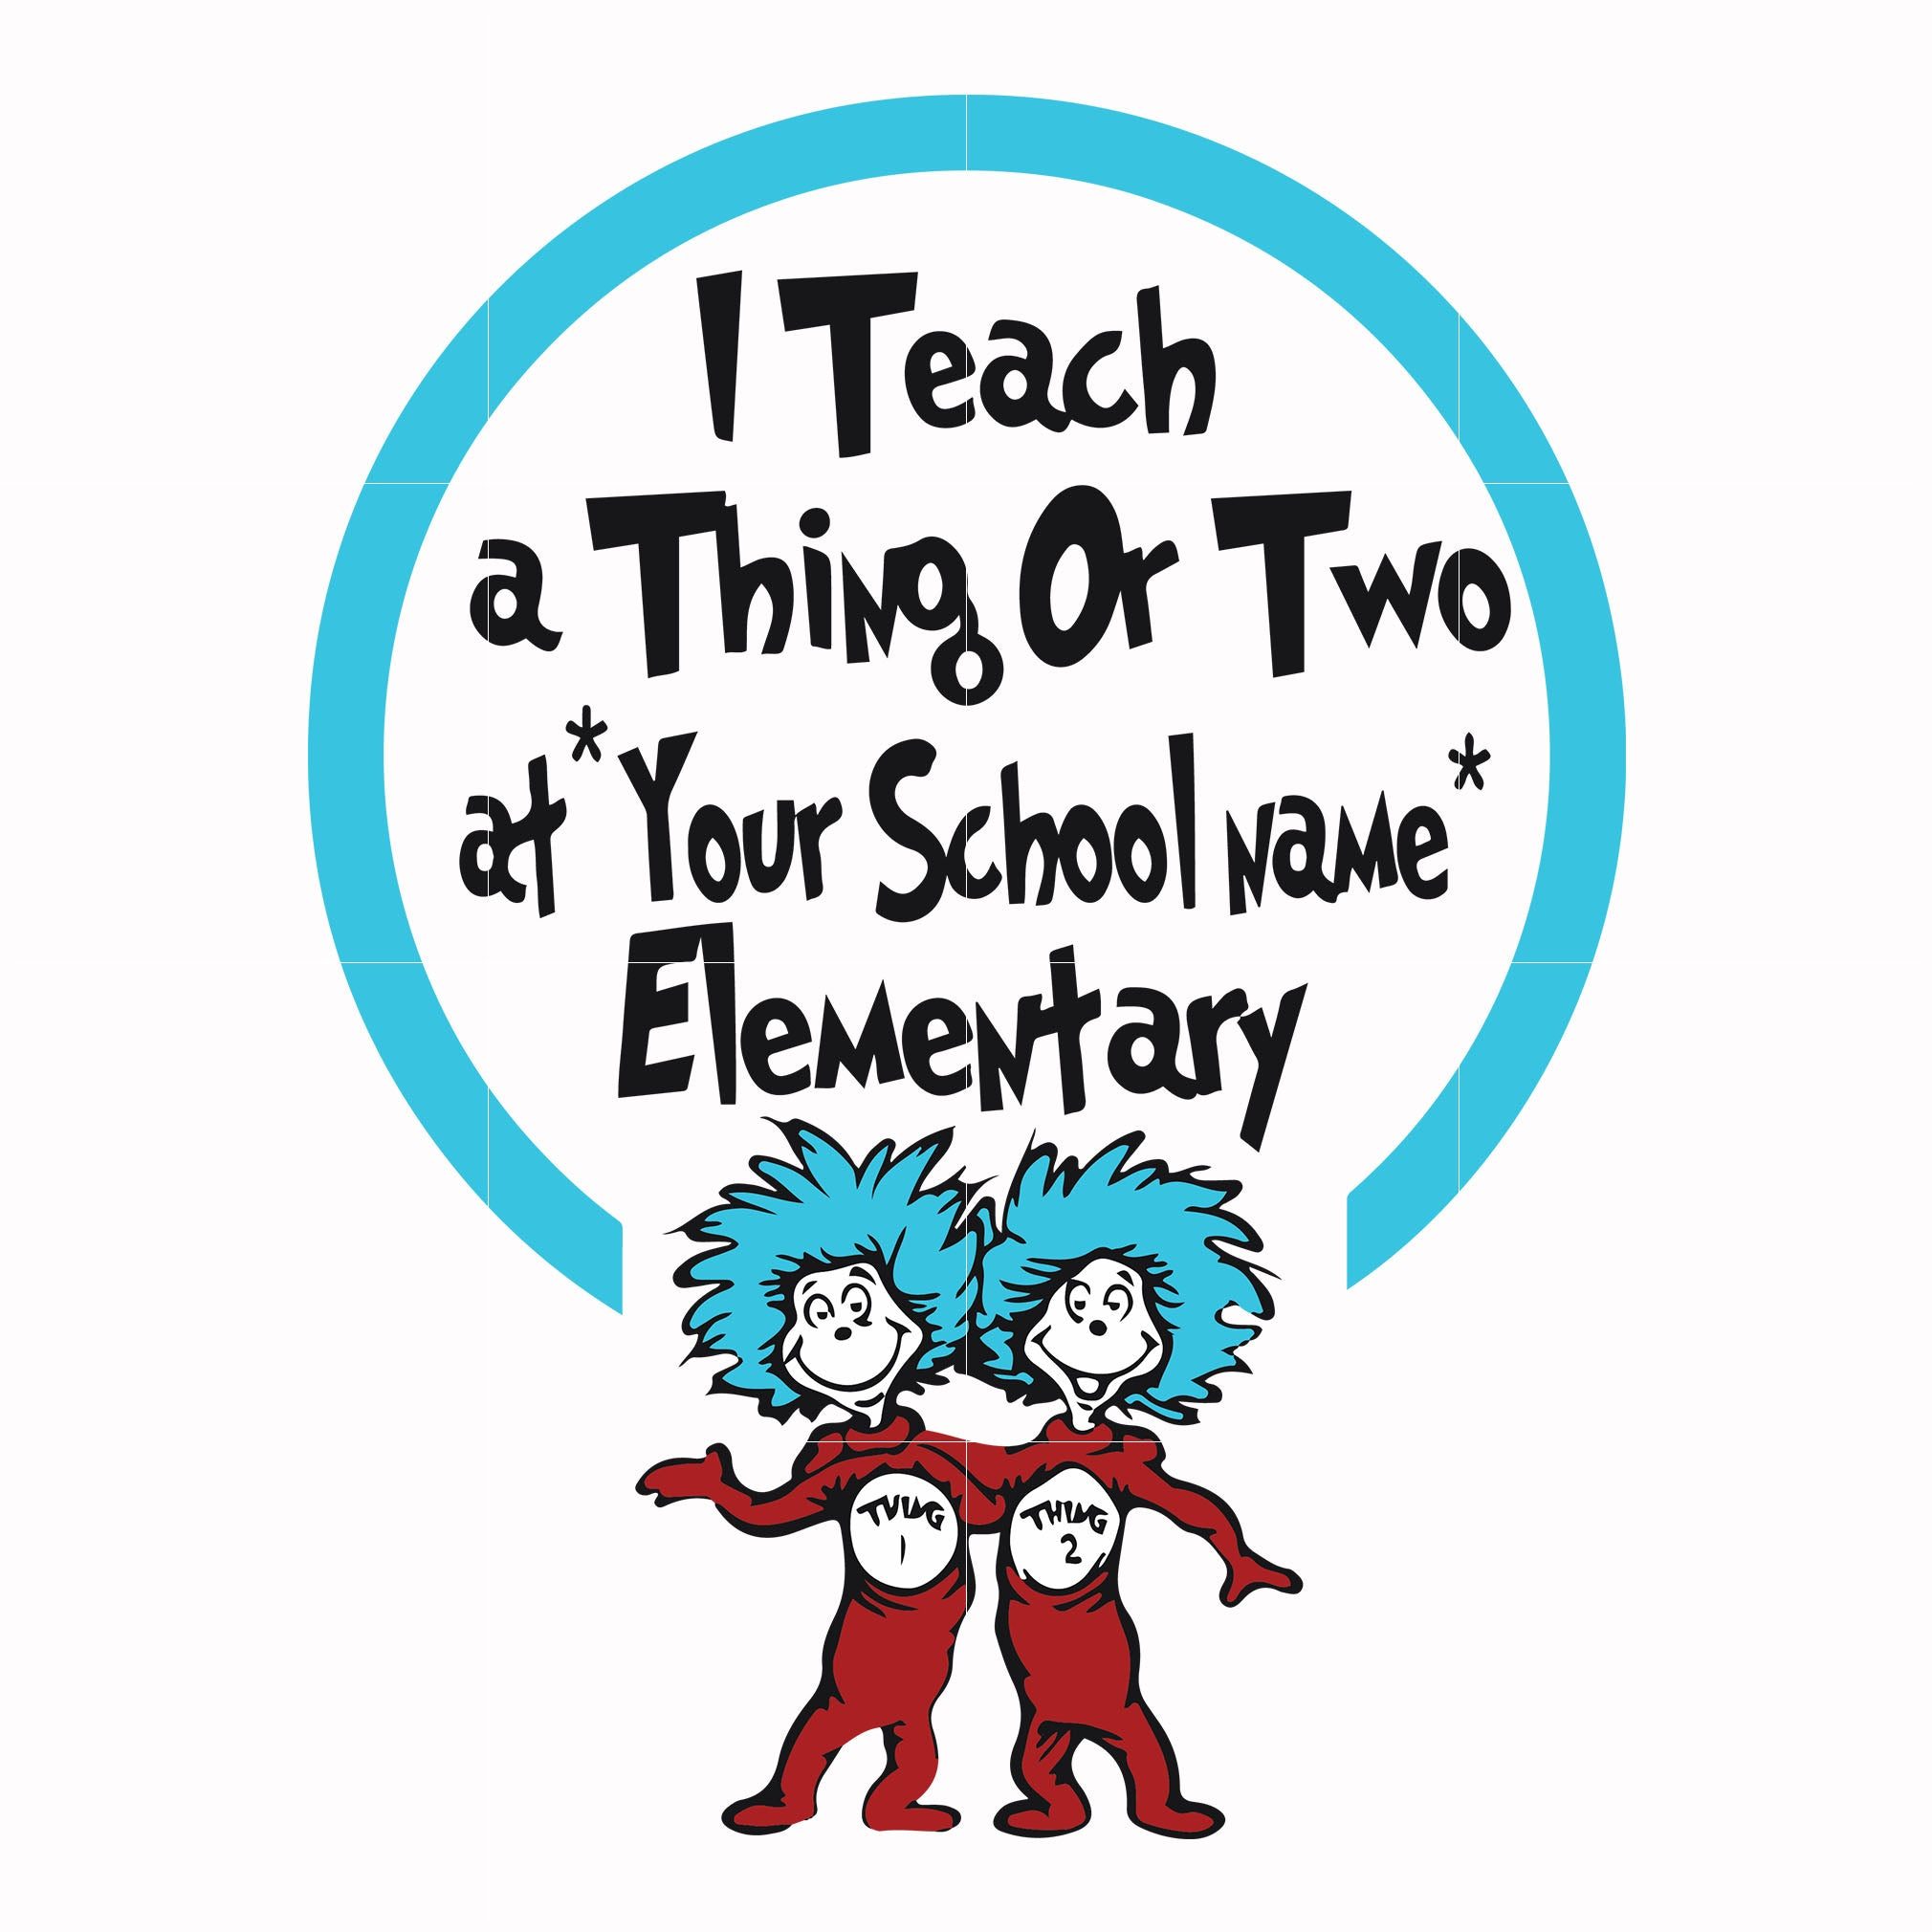 I teach a thing or two at your school name elemetary, dr seuss svg, dr seuss quotes, digital file